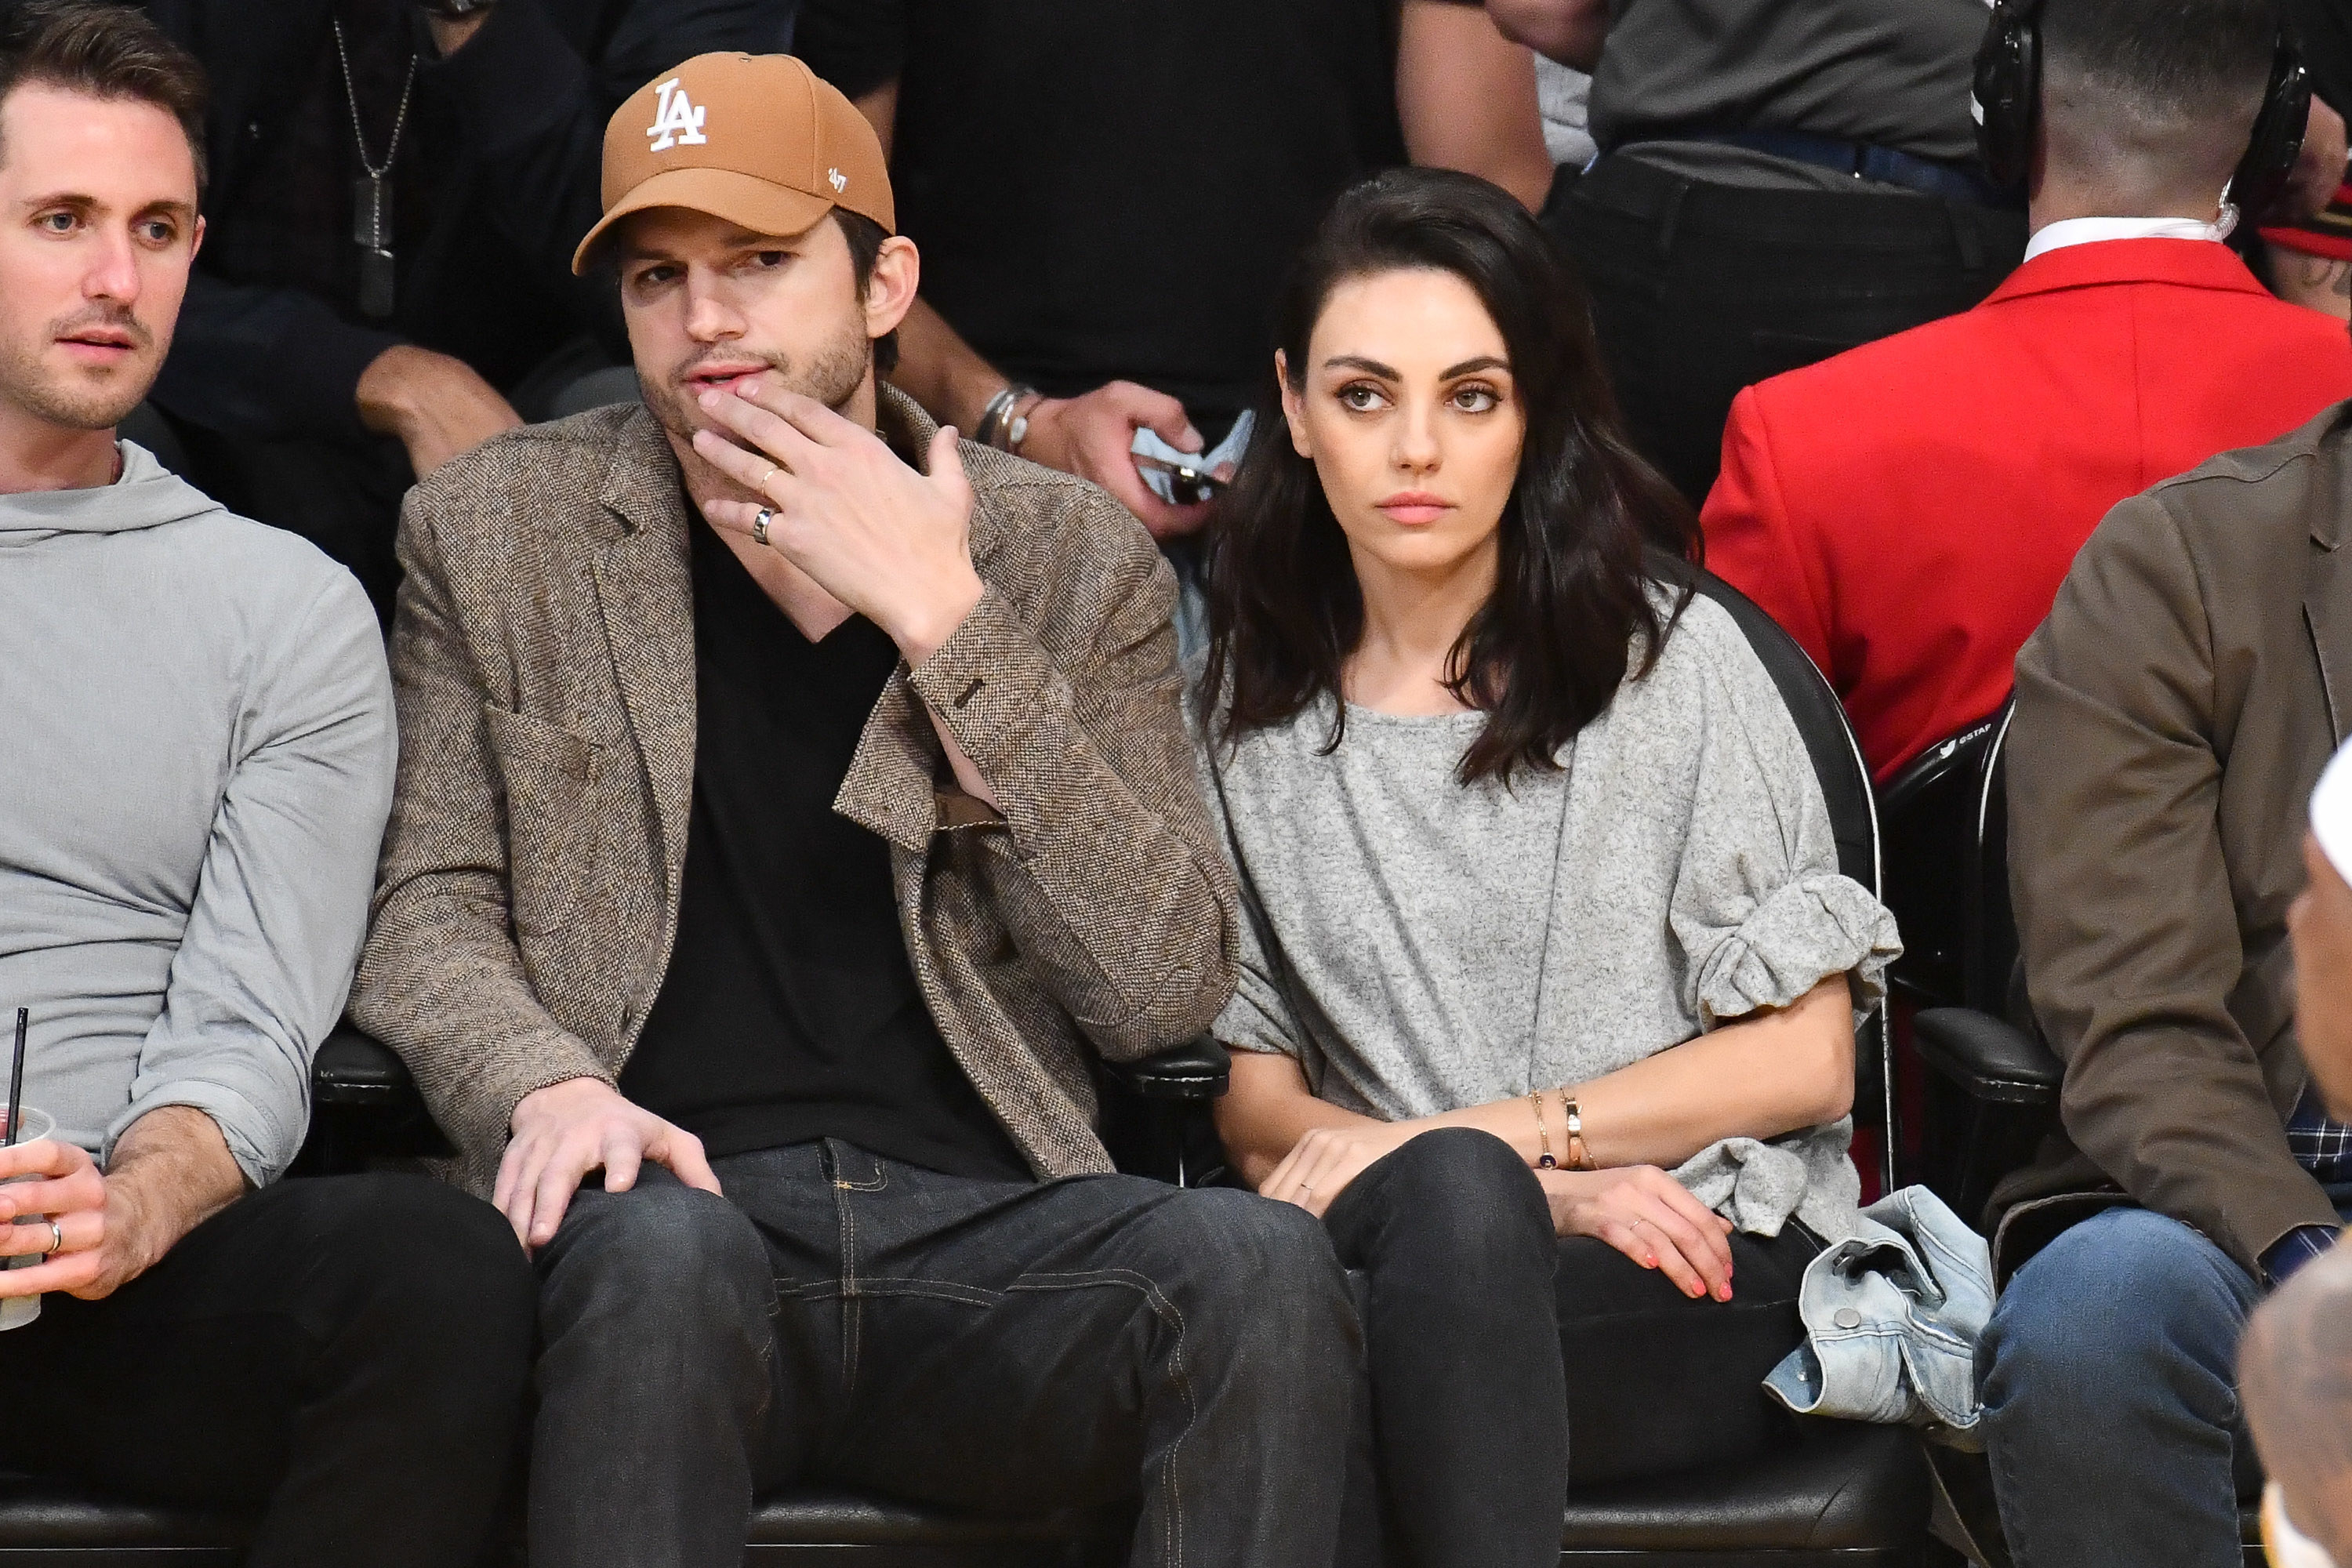 Ashton Kutcher, wearing a Los Angeles Dodgers baseball cap, jacket, v-neck, and jeans sits next to Mila Kunis, wearing a casual shirt and pants, while watching a Los Angeles Lakers Game